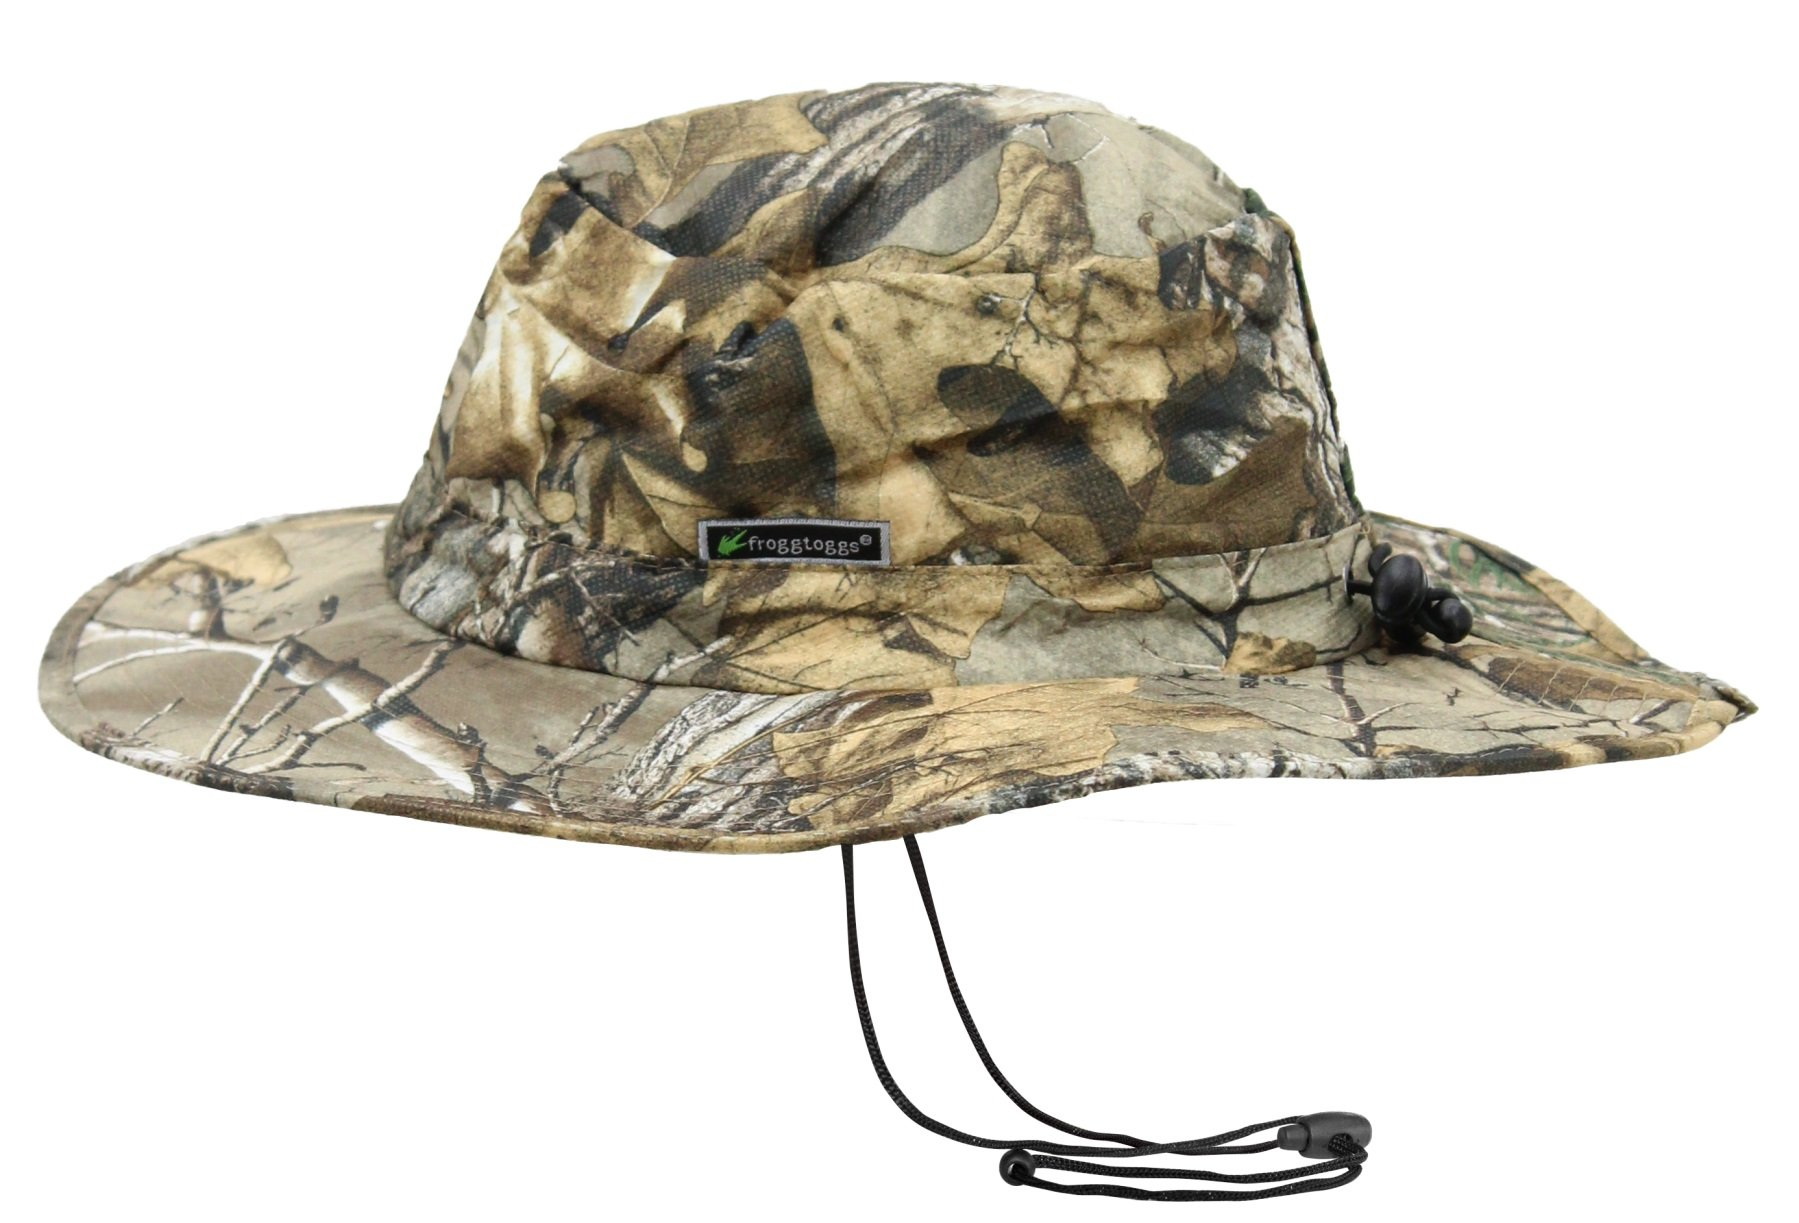 Frogg Toggs Waterproof Boonie Hat Realtree Xtra  FTH103-54 ... f15acc11c09